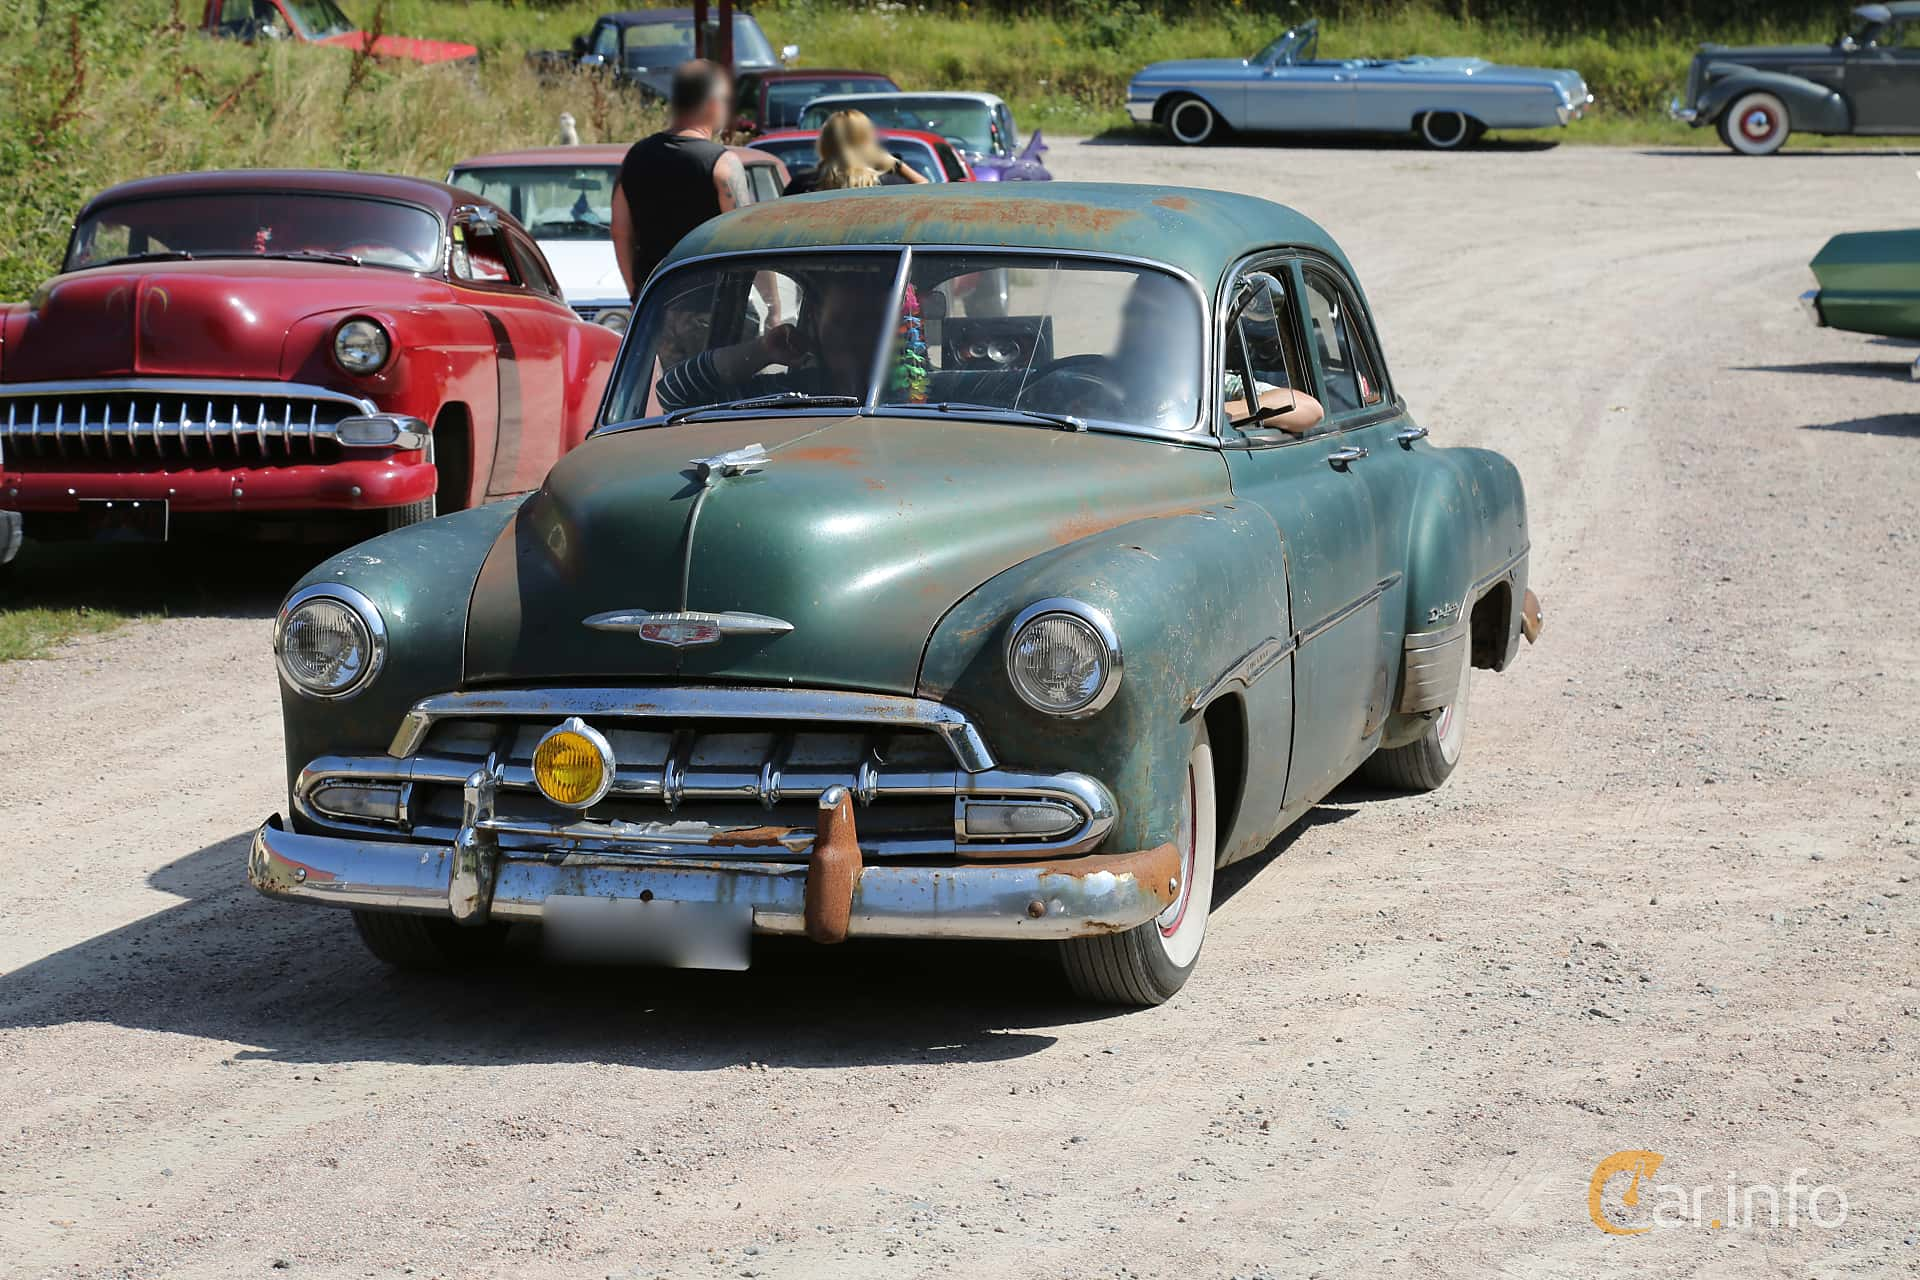 Chevrolet Styleline Deluxe 4-door Sedan 1952 at A-bombers - Old Style Weekend Backamo 2019